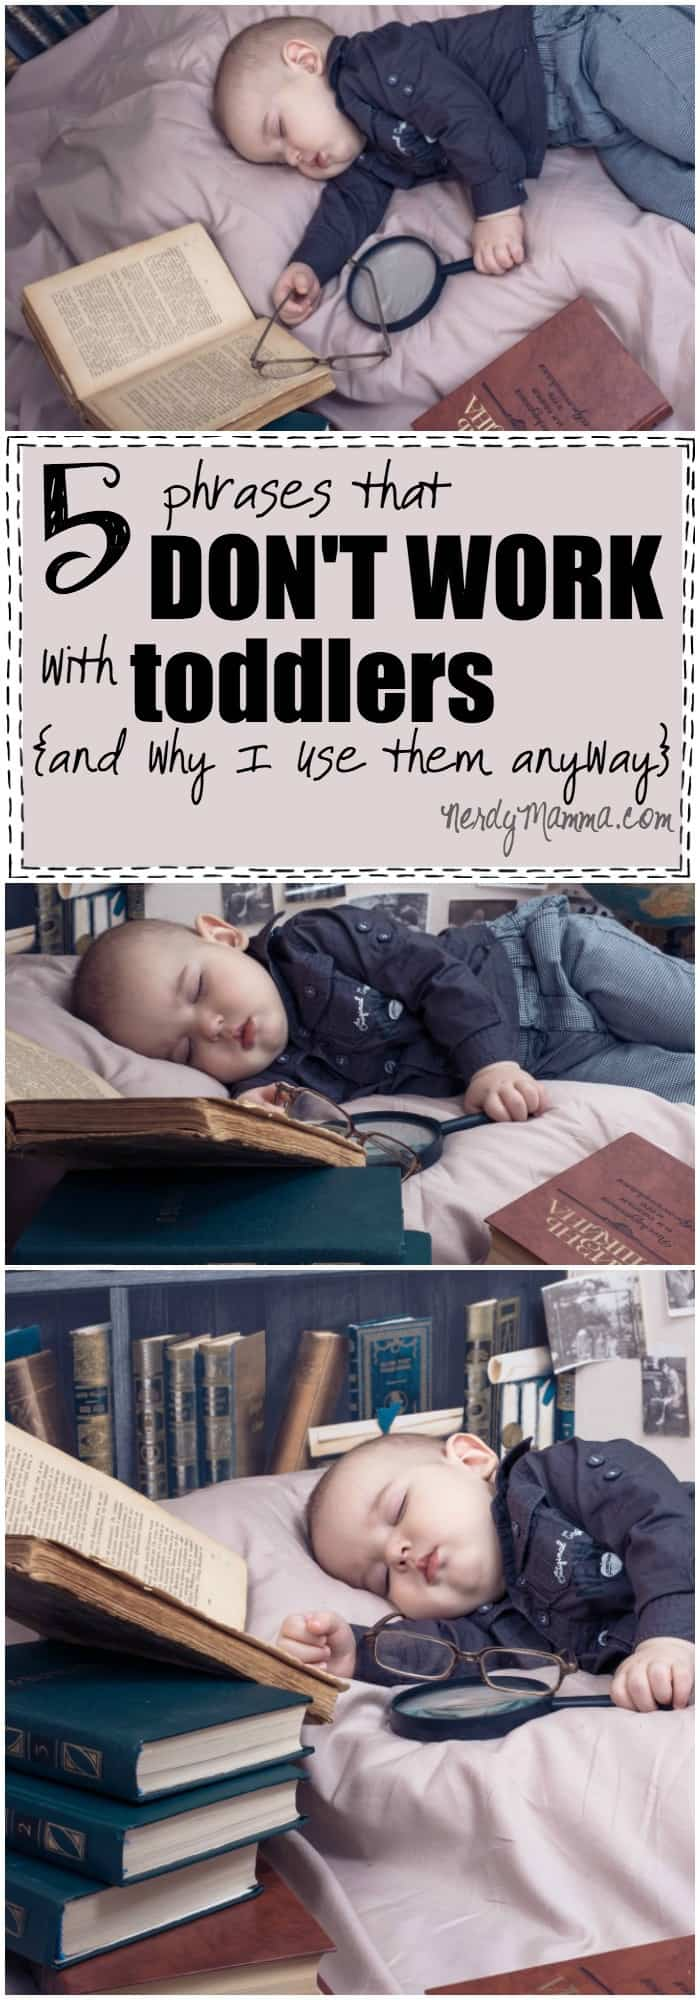 These 5 Phrases that don't work with toddlers is too funny, but oddly truthful. I love it.